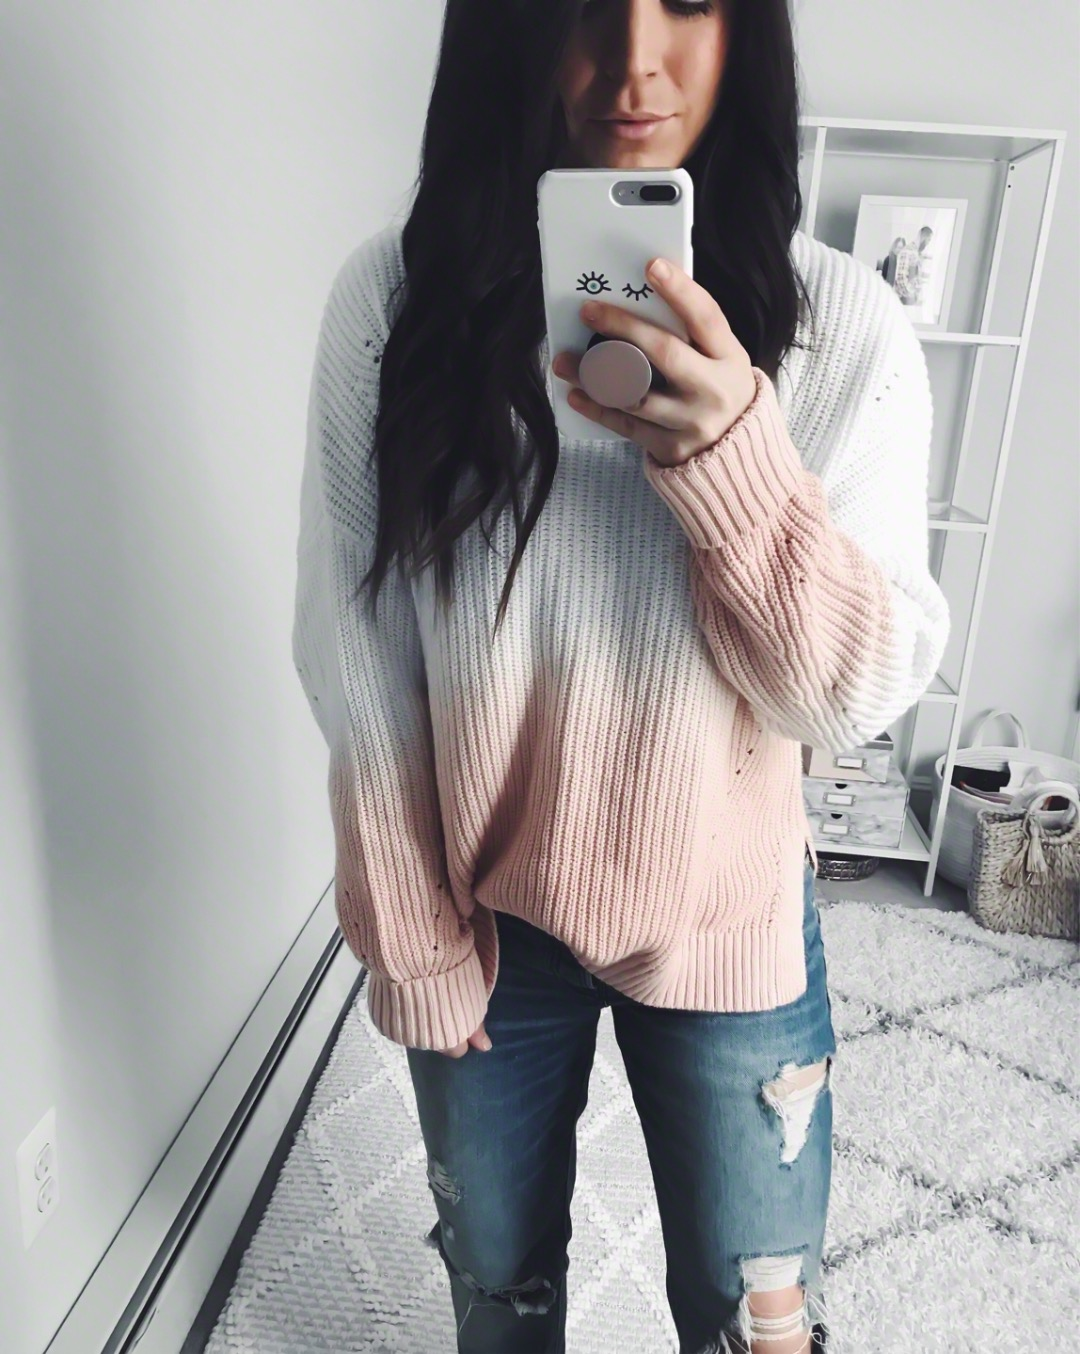 Instagram Round Up + Current Sales | Pine Barren Beauty | outfit of the day, outfit details, spring outfit, light weight spring sweater, ombre sweater, distressed denim